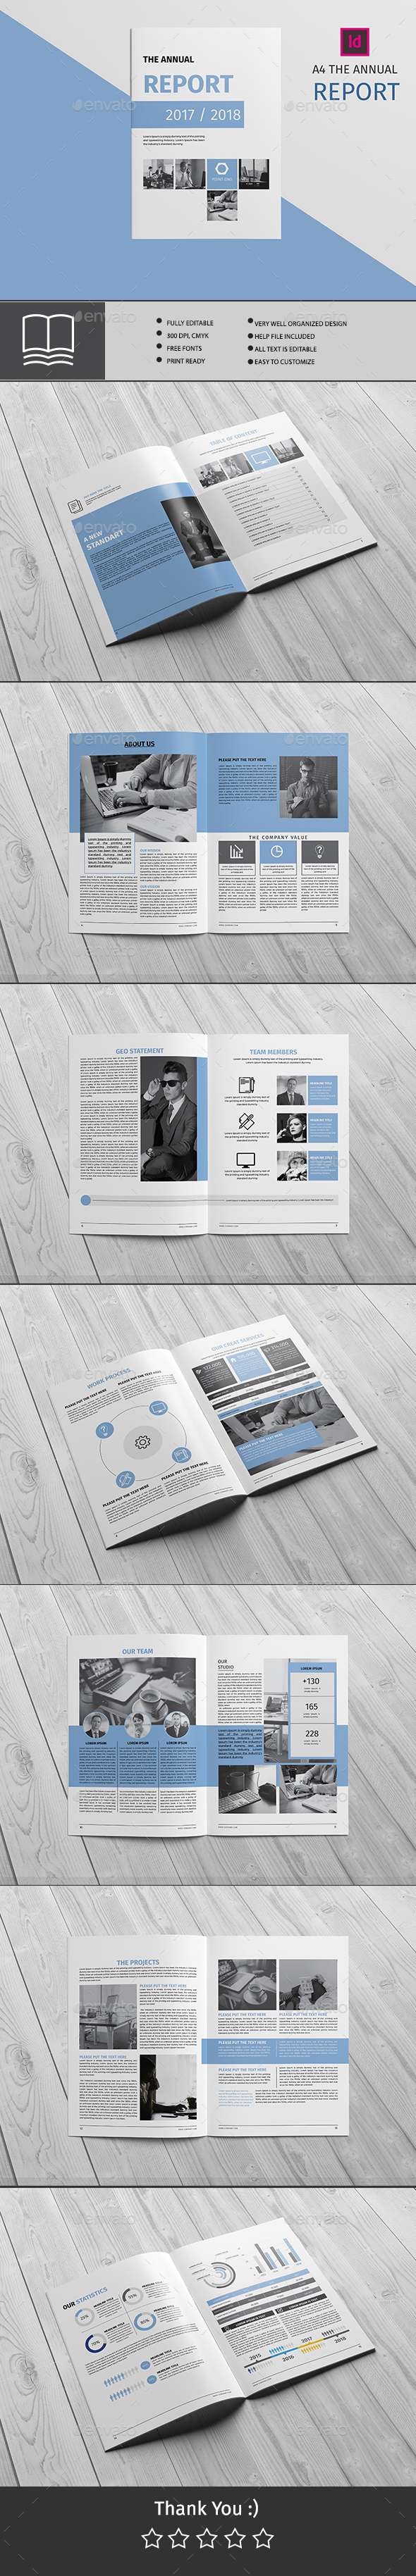 GraphicRiver REPORT 20820906